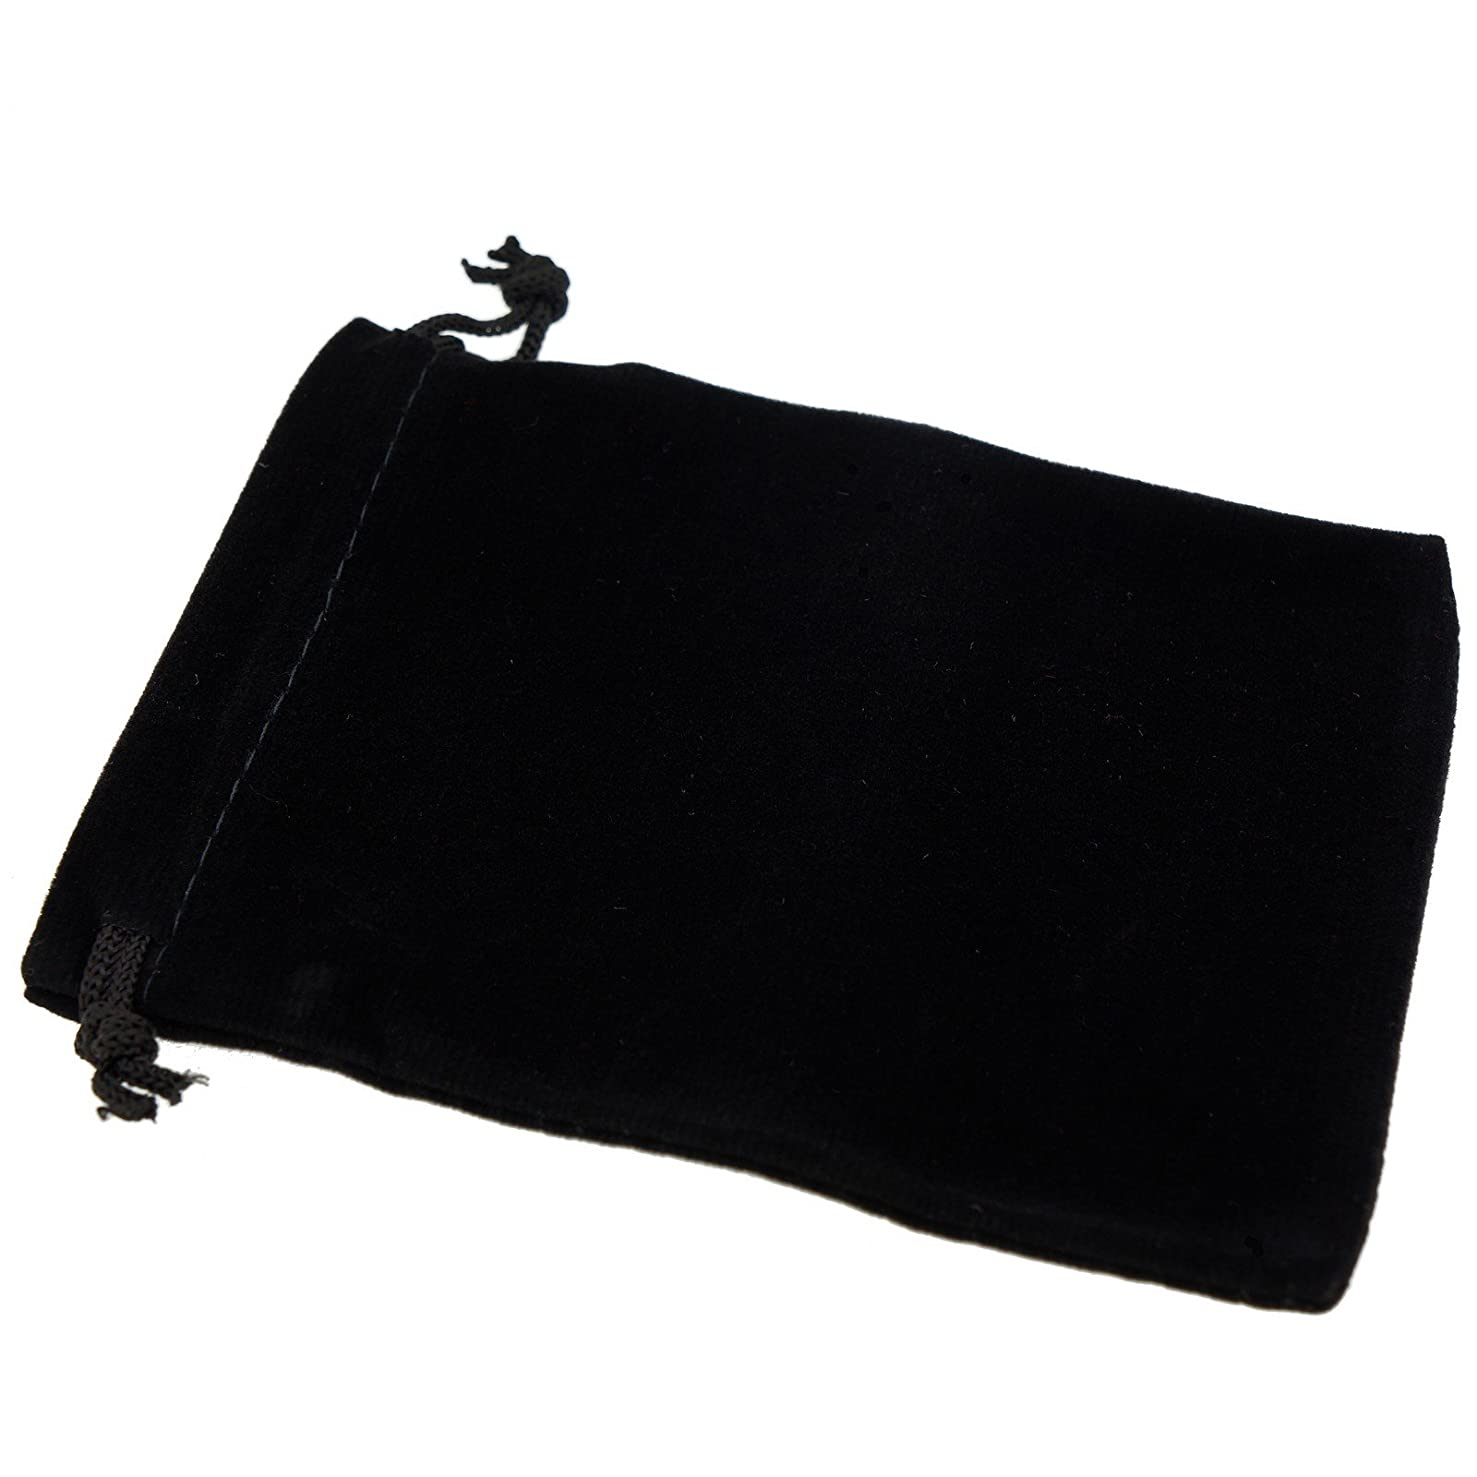 Pack of 12 Black Color Soft Velvet Pouches w Drawstrings for Jewelry Gift Packaging, 9x12cm